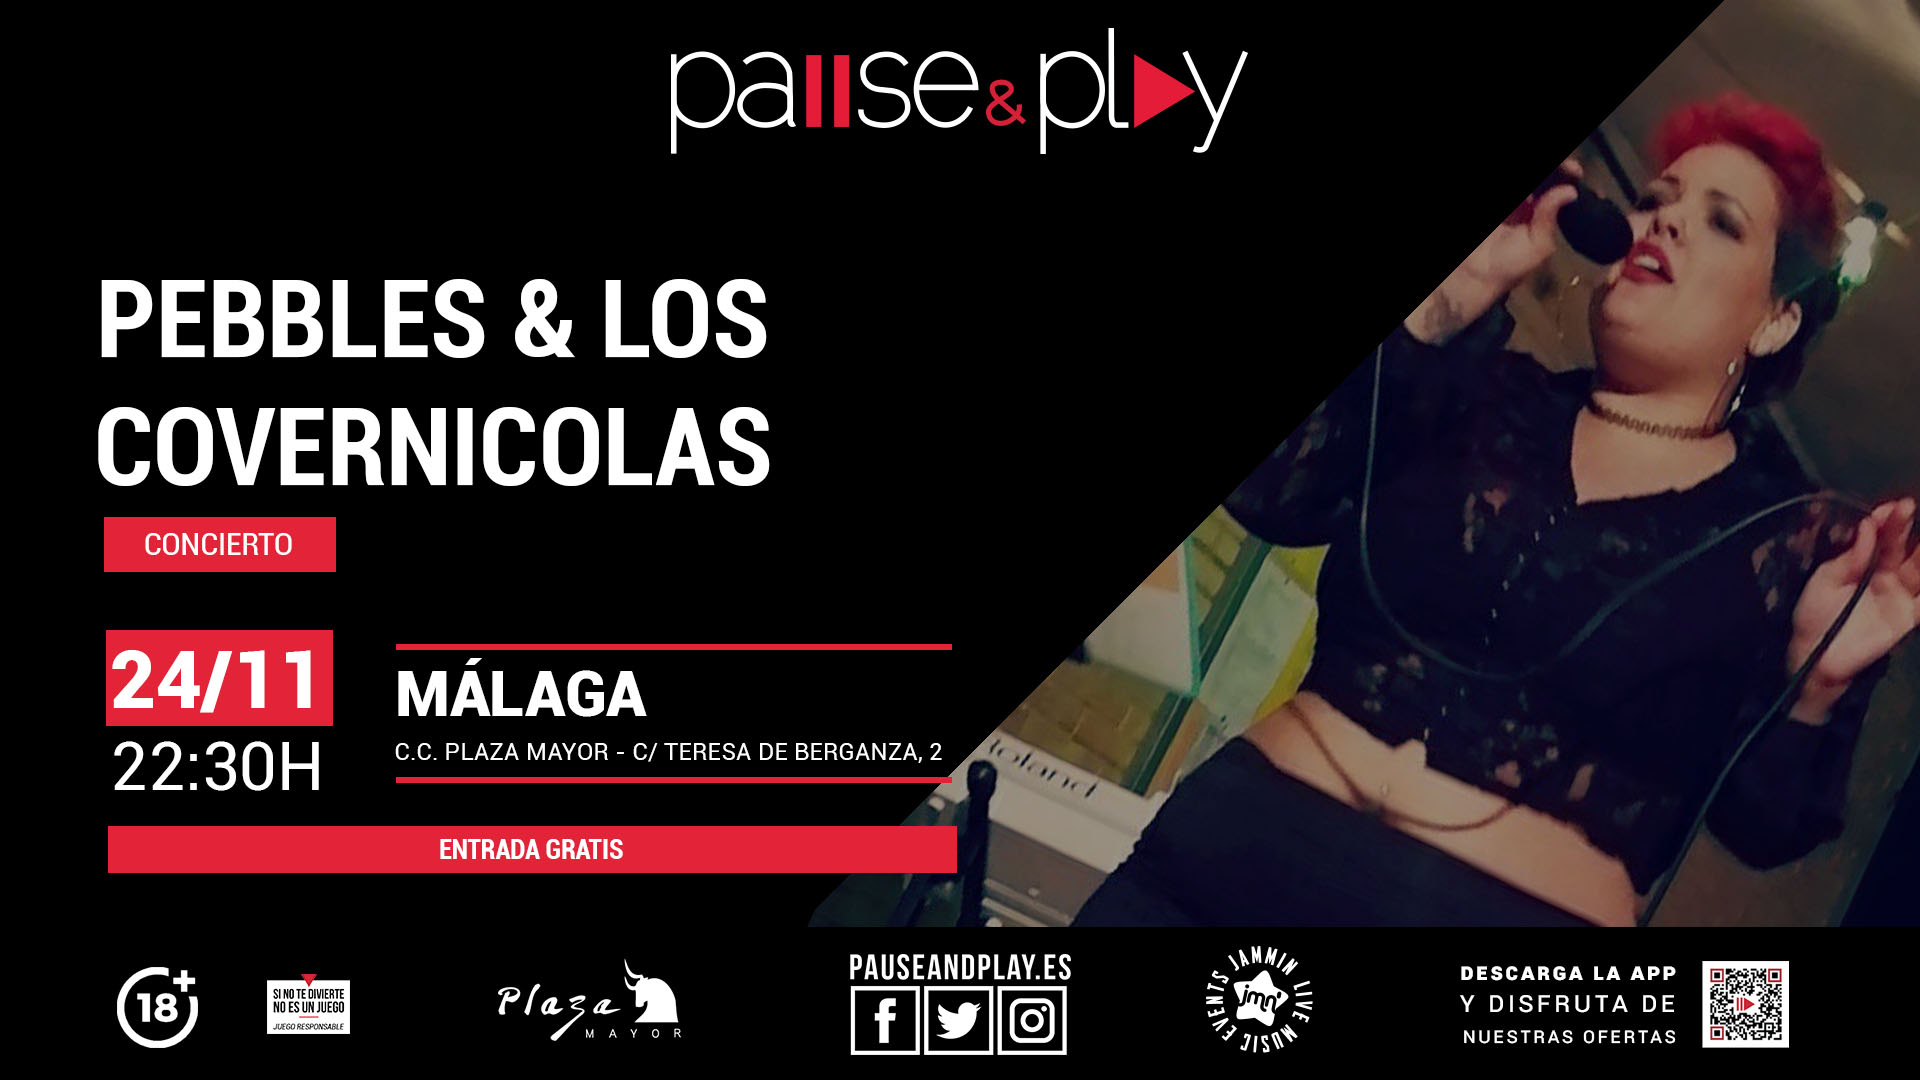 PAUSE&PLAY PLAZA MAYOR